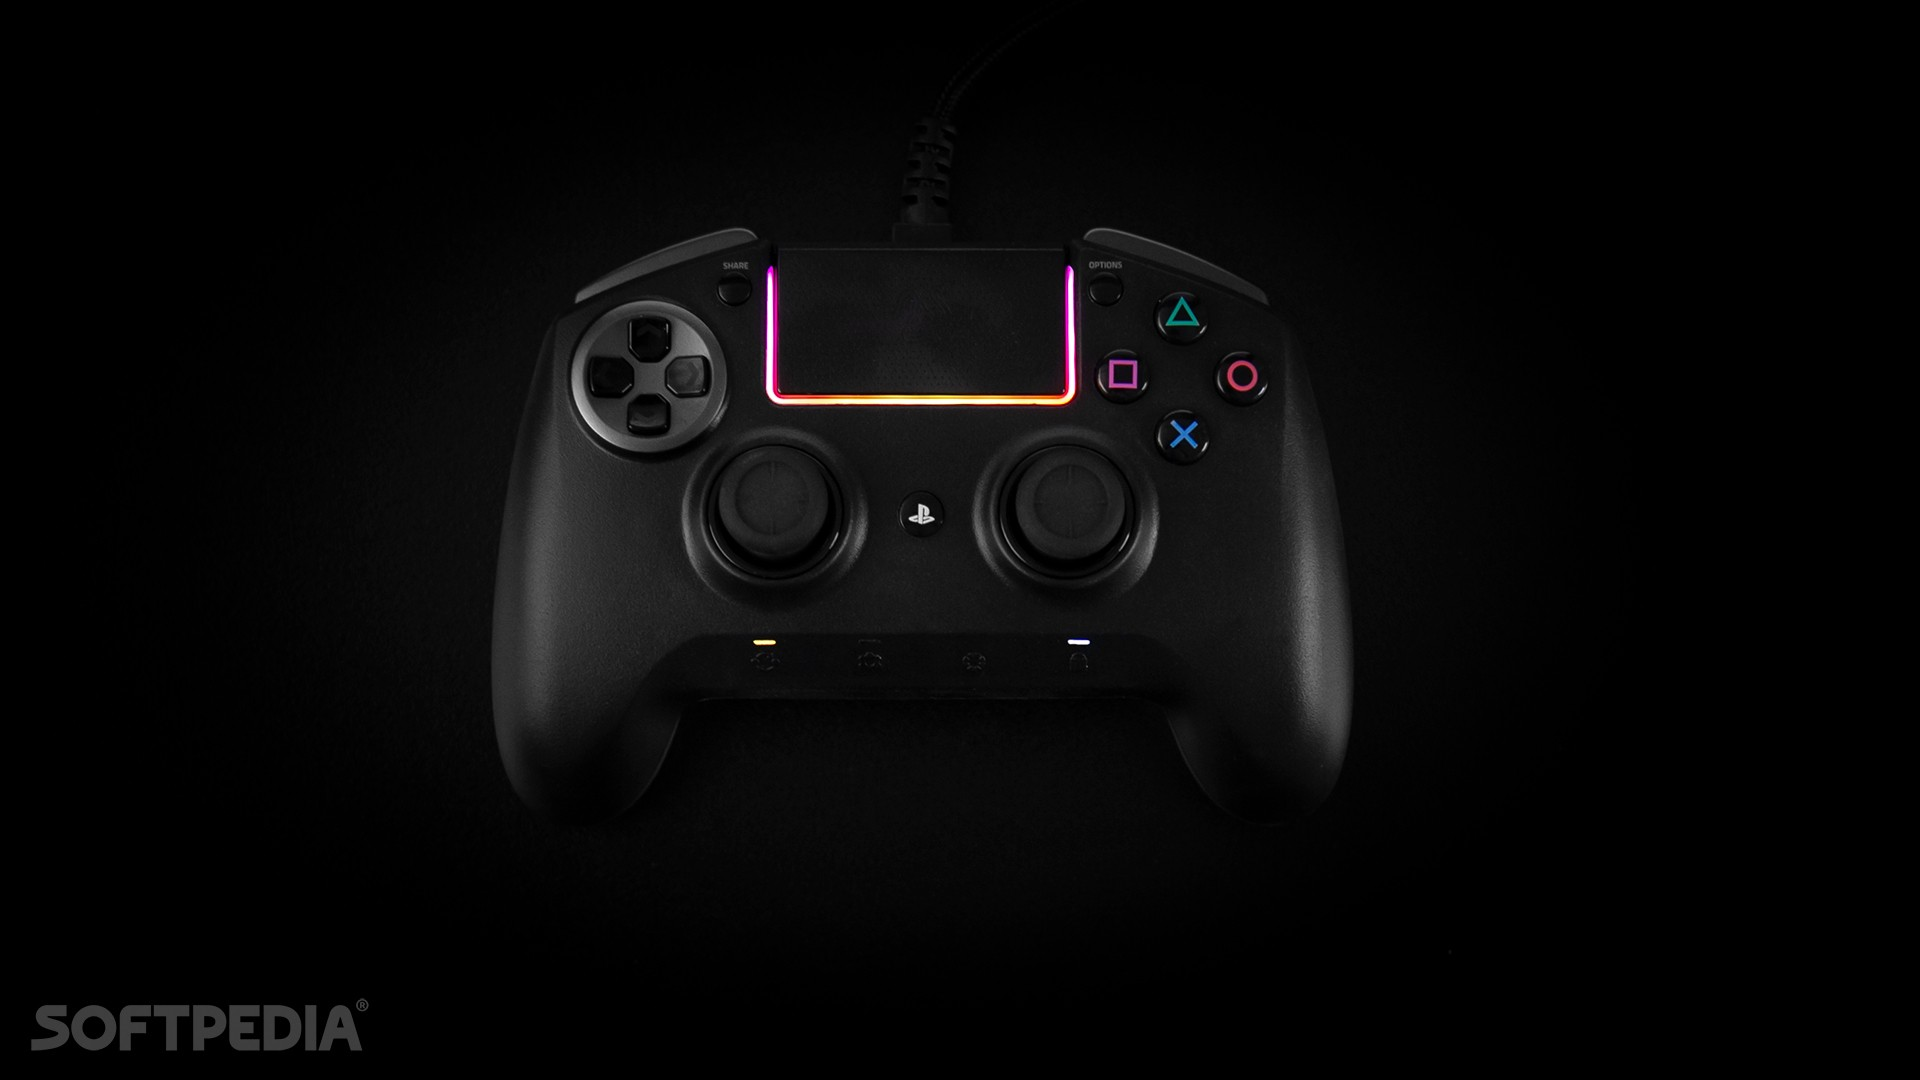 Razer Raiju Ultimate Review A Very Different Ps4 Controller Anith Razer's raiju ultimate is a big improvement over the original raiju controller, offering superb build quality, plenty of customization options and largely dependable wired functionality. razer raiju ultimate review a very